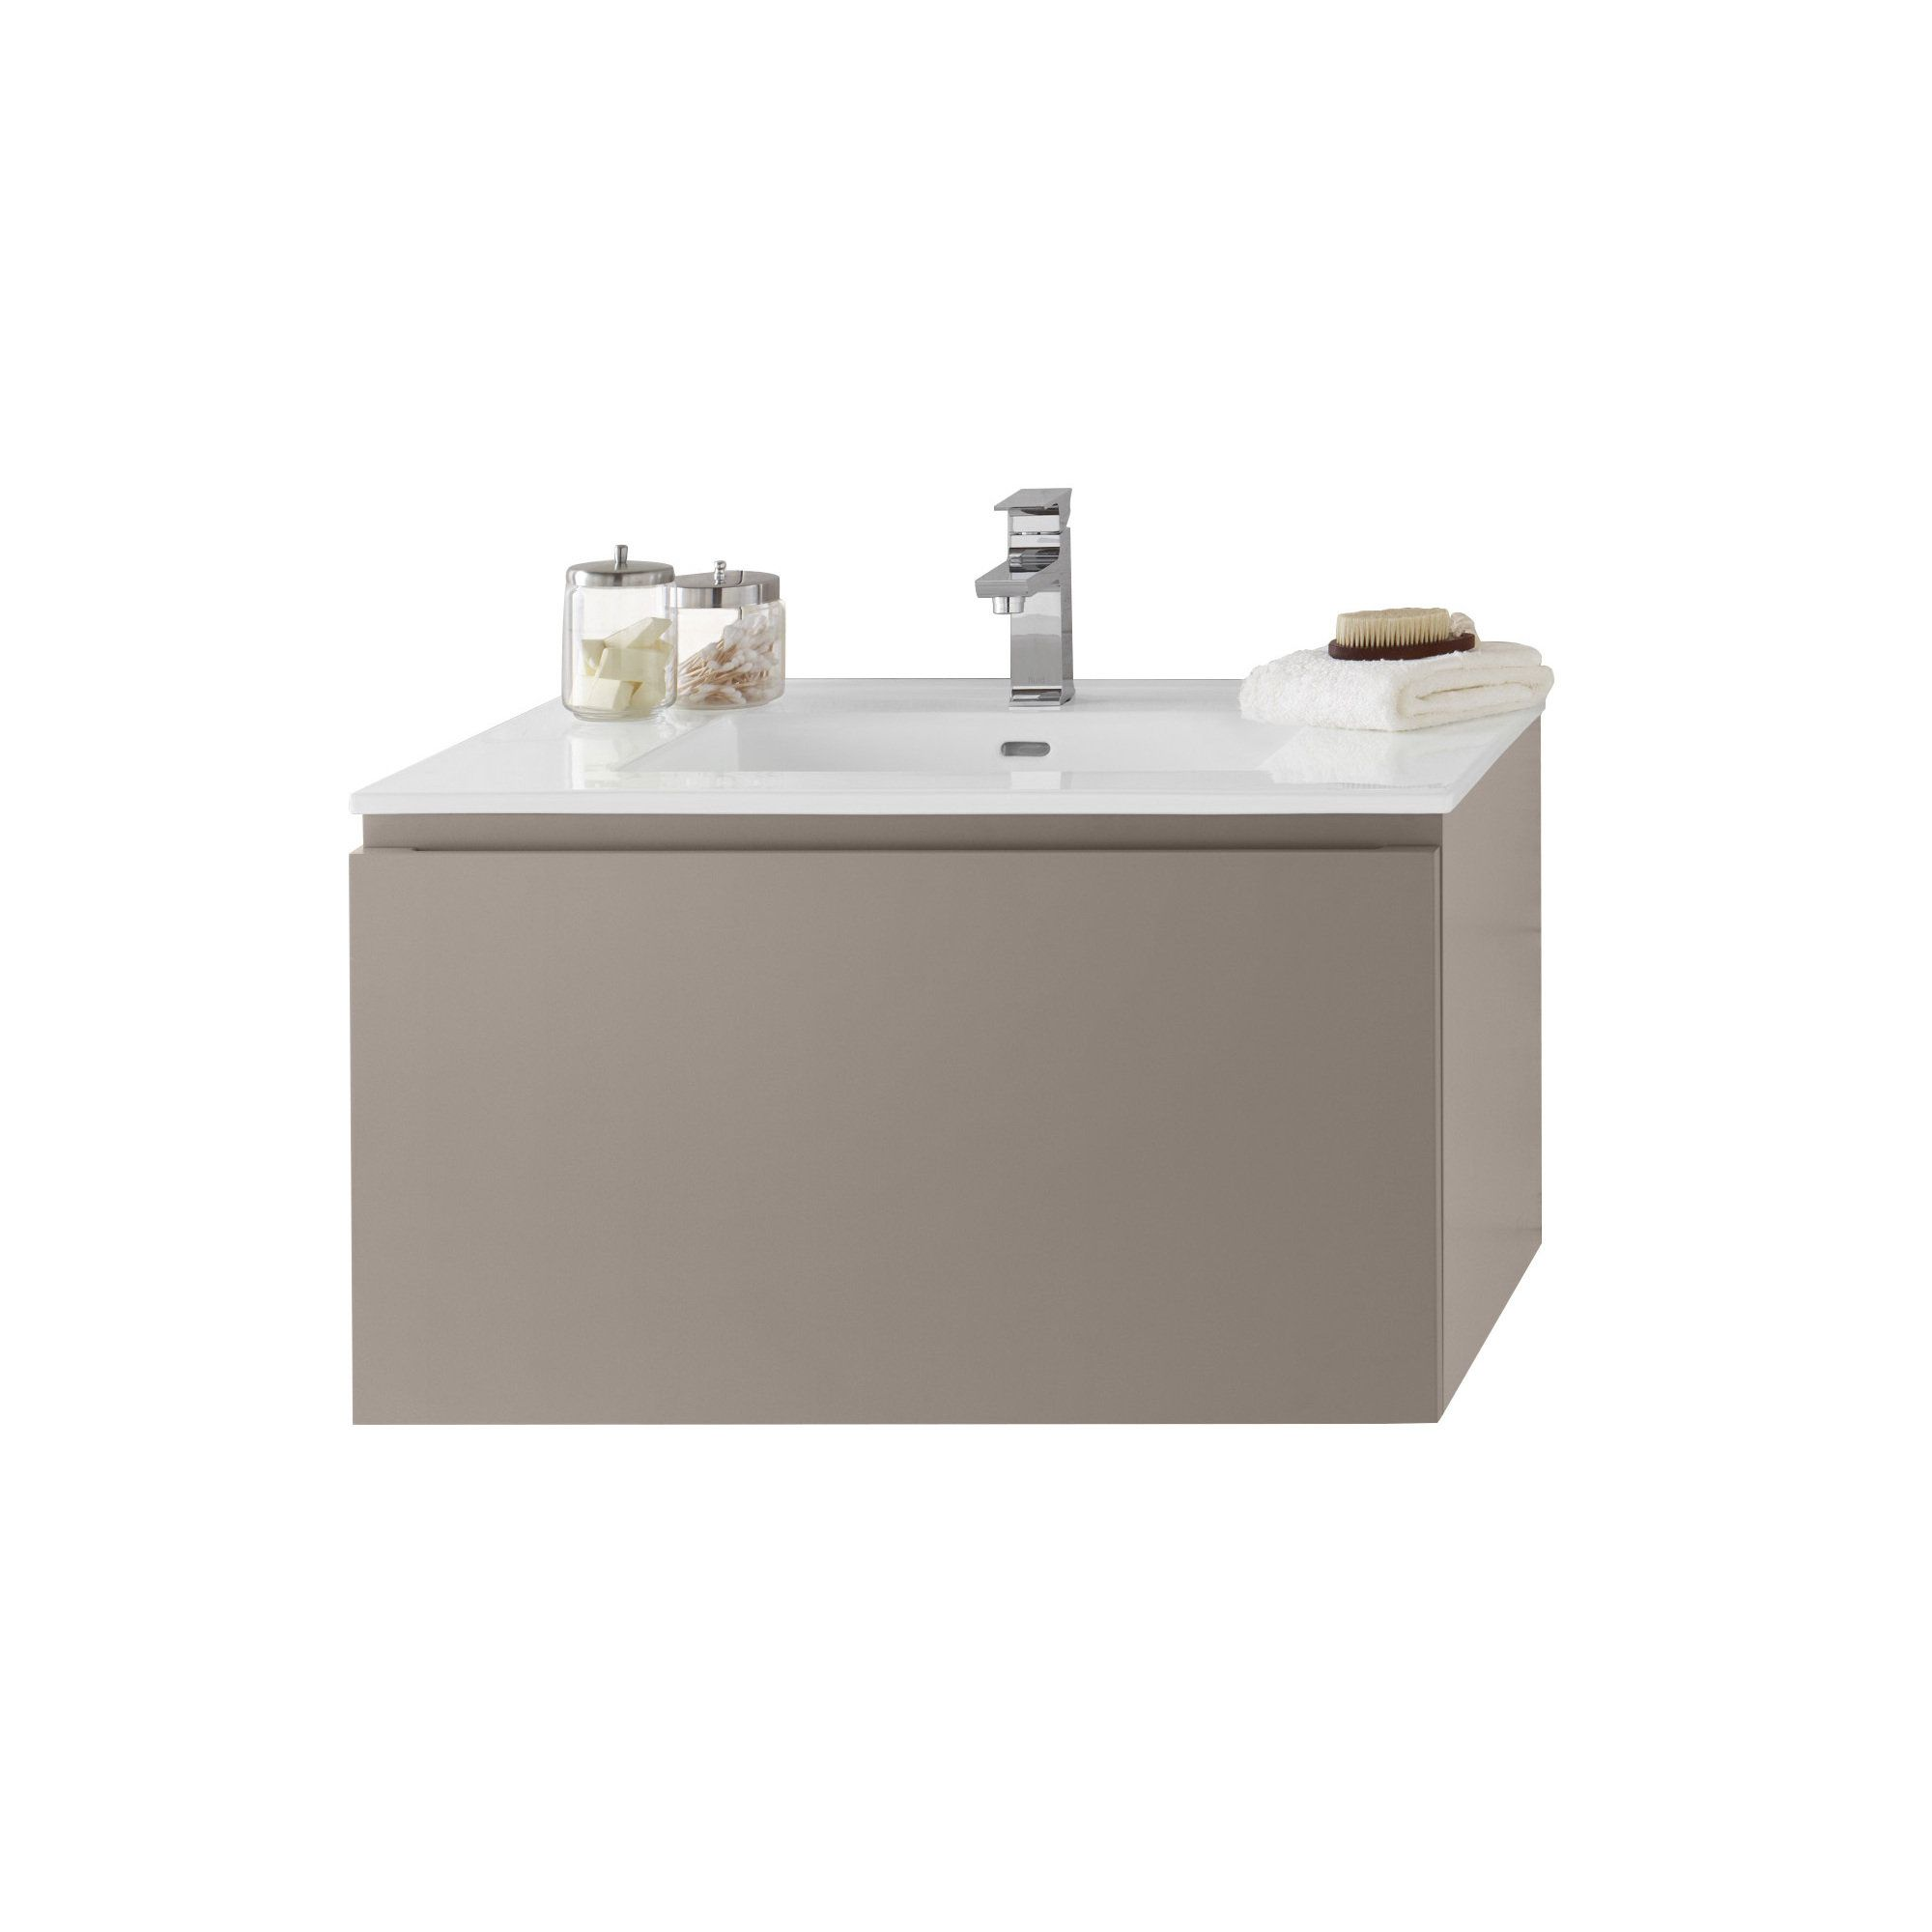 32 inch wall mounted single chrome metal pedestal bathroom vanity - Ronbow Ariella Wall Mount Bathroom Vanity Set In Blush Taupe Ceramic Bathroom Sink Top In White Blush Taupe Grey Size Single Vanities